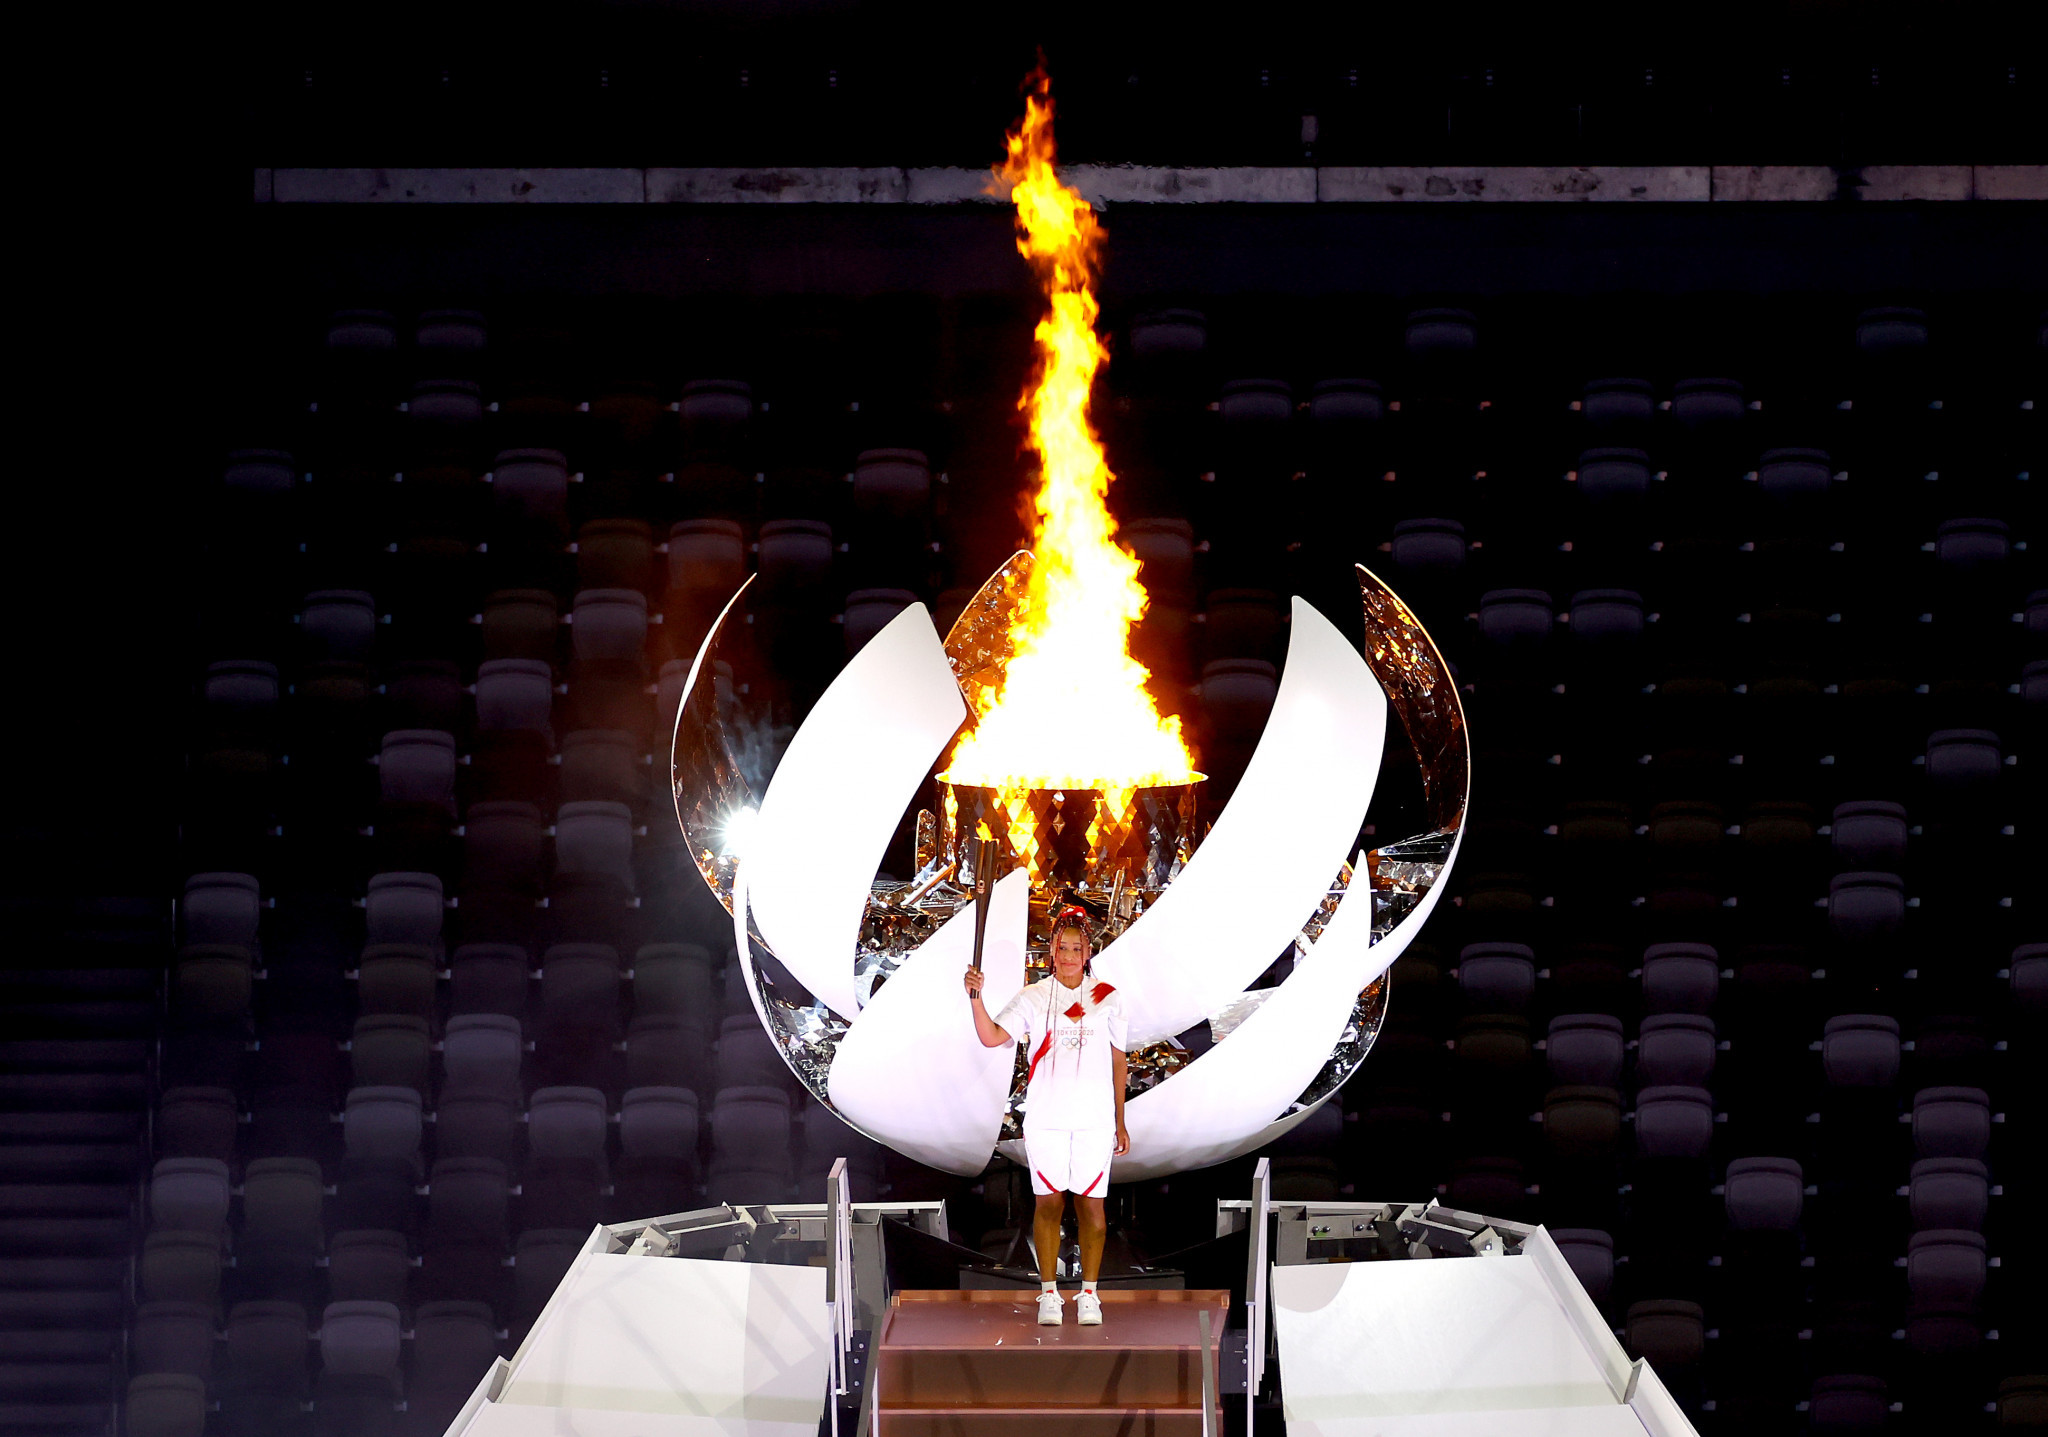 Naomi Osaka lit the Olympic Cauldron as the delayed Tokyo 2020 Olympics began ©Getty Images